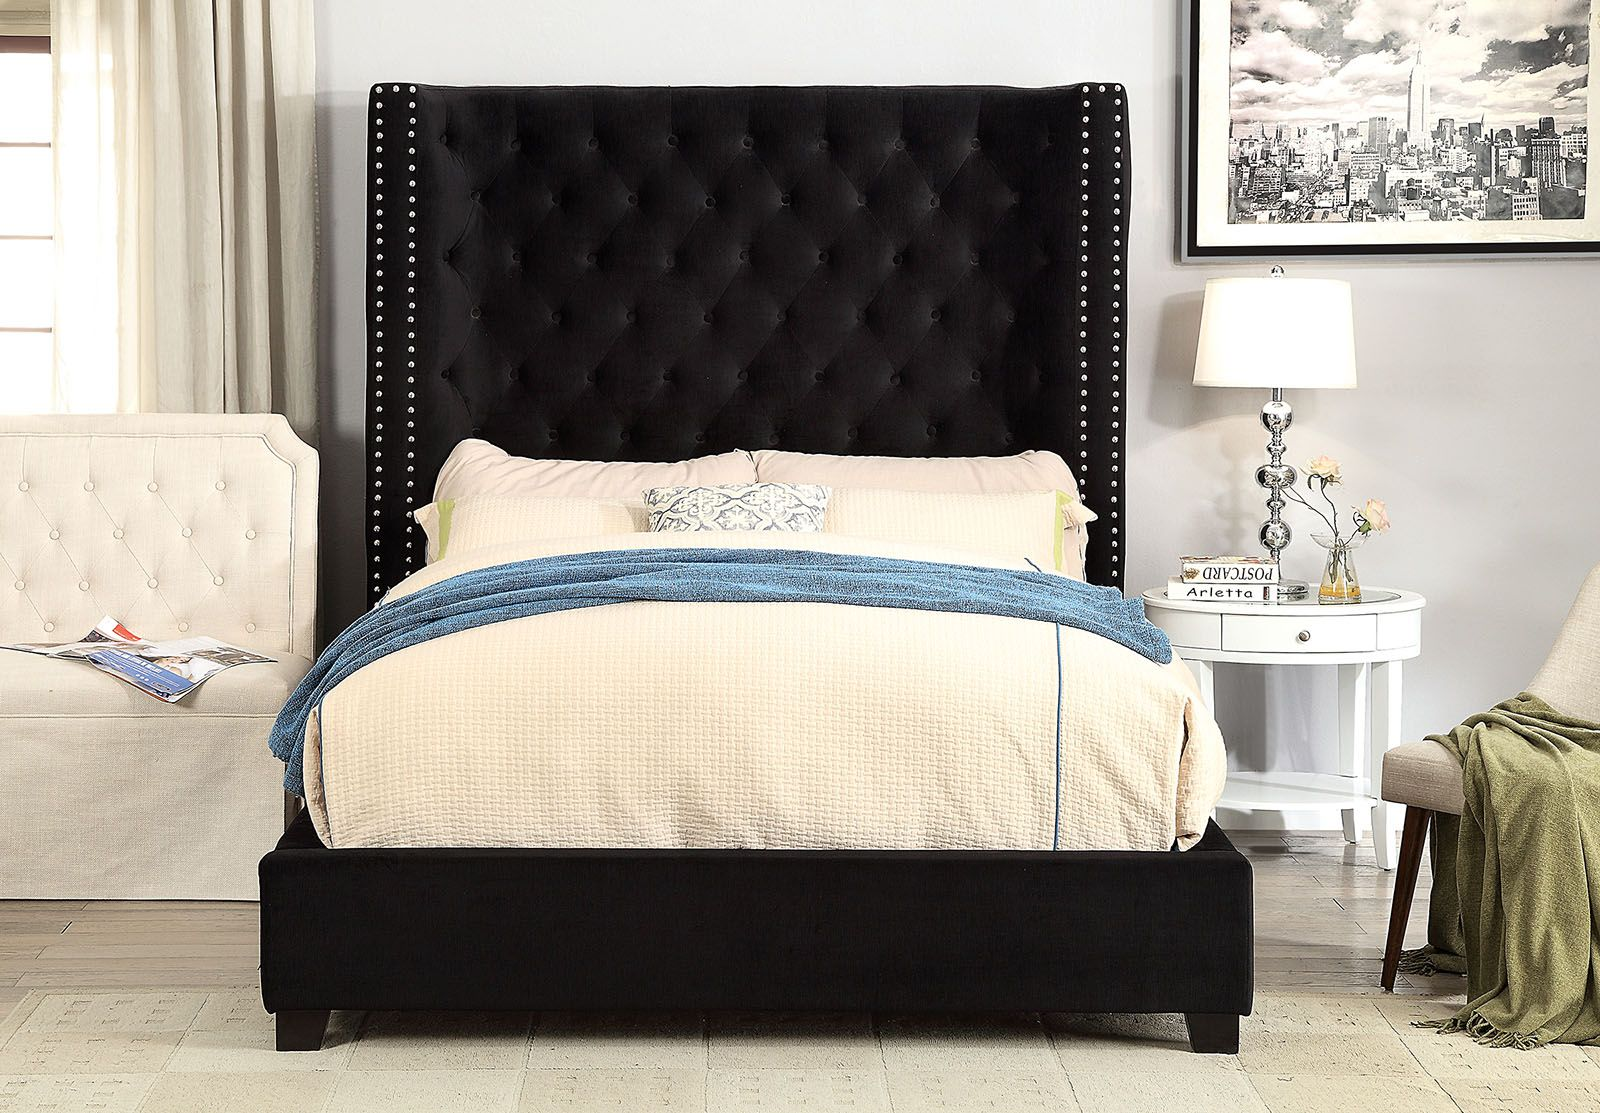 Cm7679bk Mirabelle Black Fabric And Tufted Tall Queen Headboard Bed Frame Set Furniture Bed Frame Sets Black Bedding